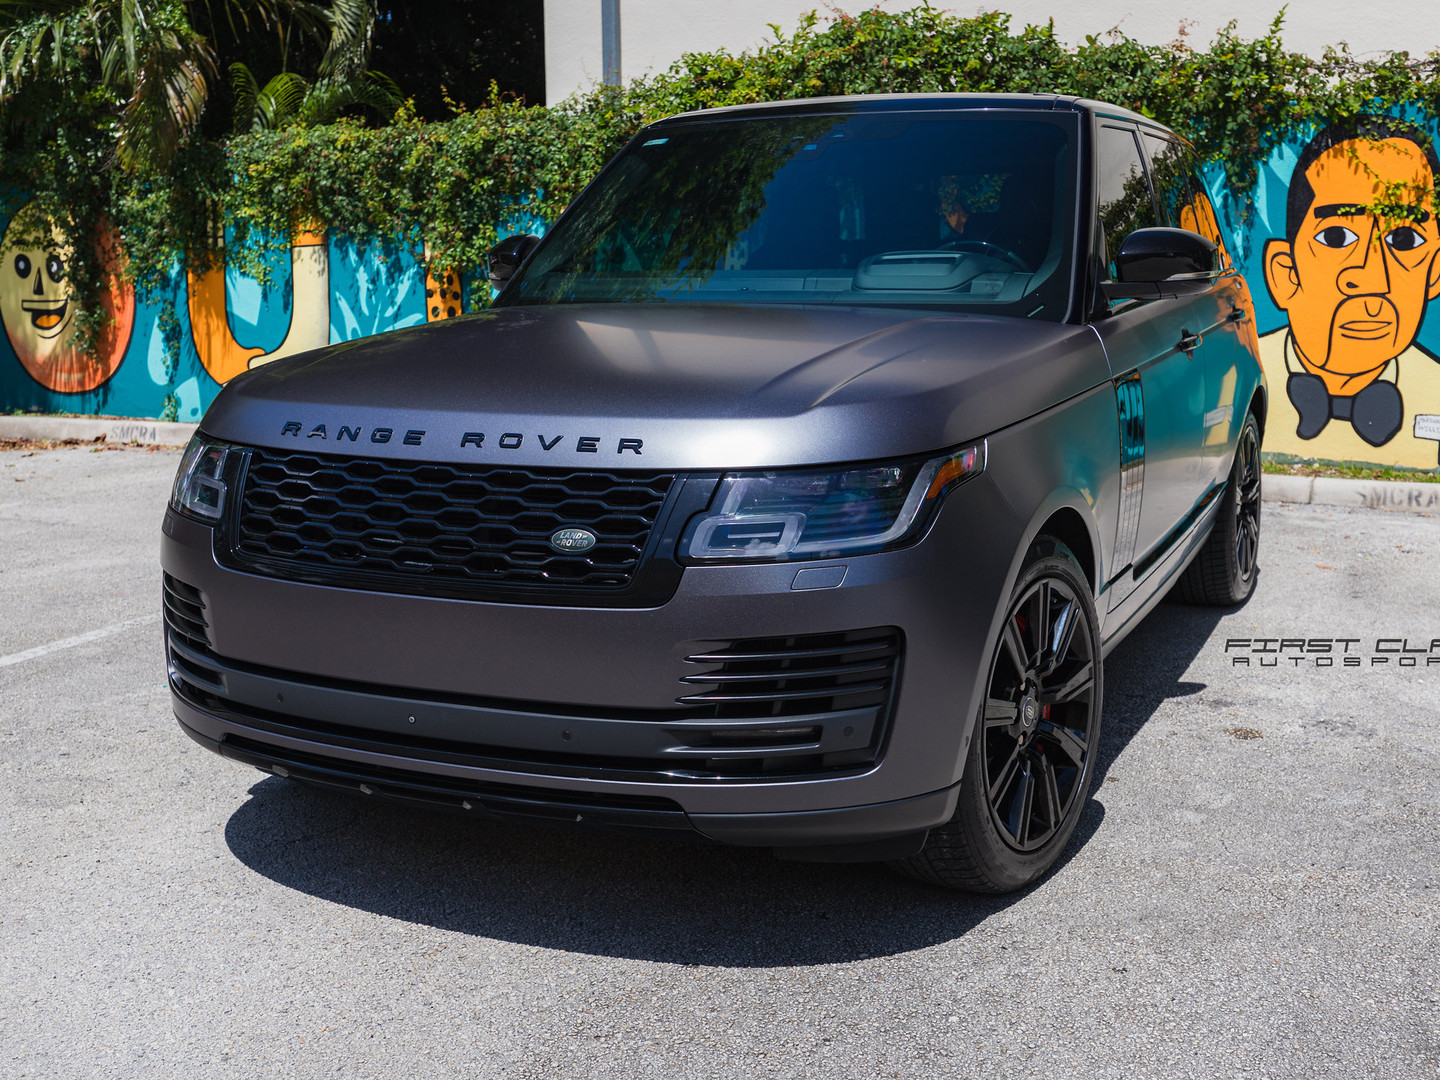 Range Rover Powder Coating Miami